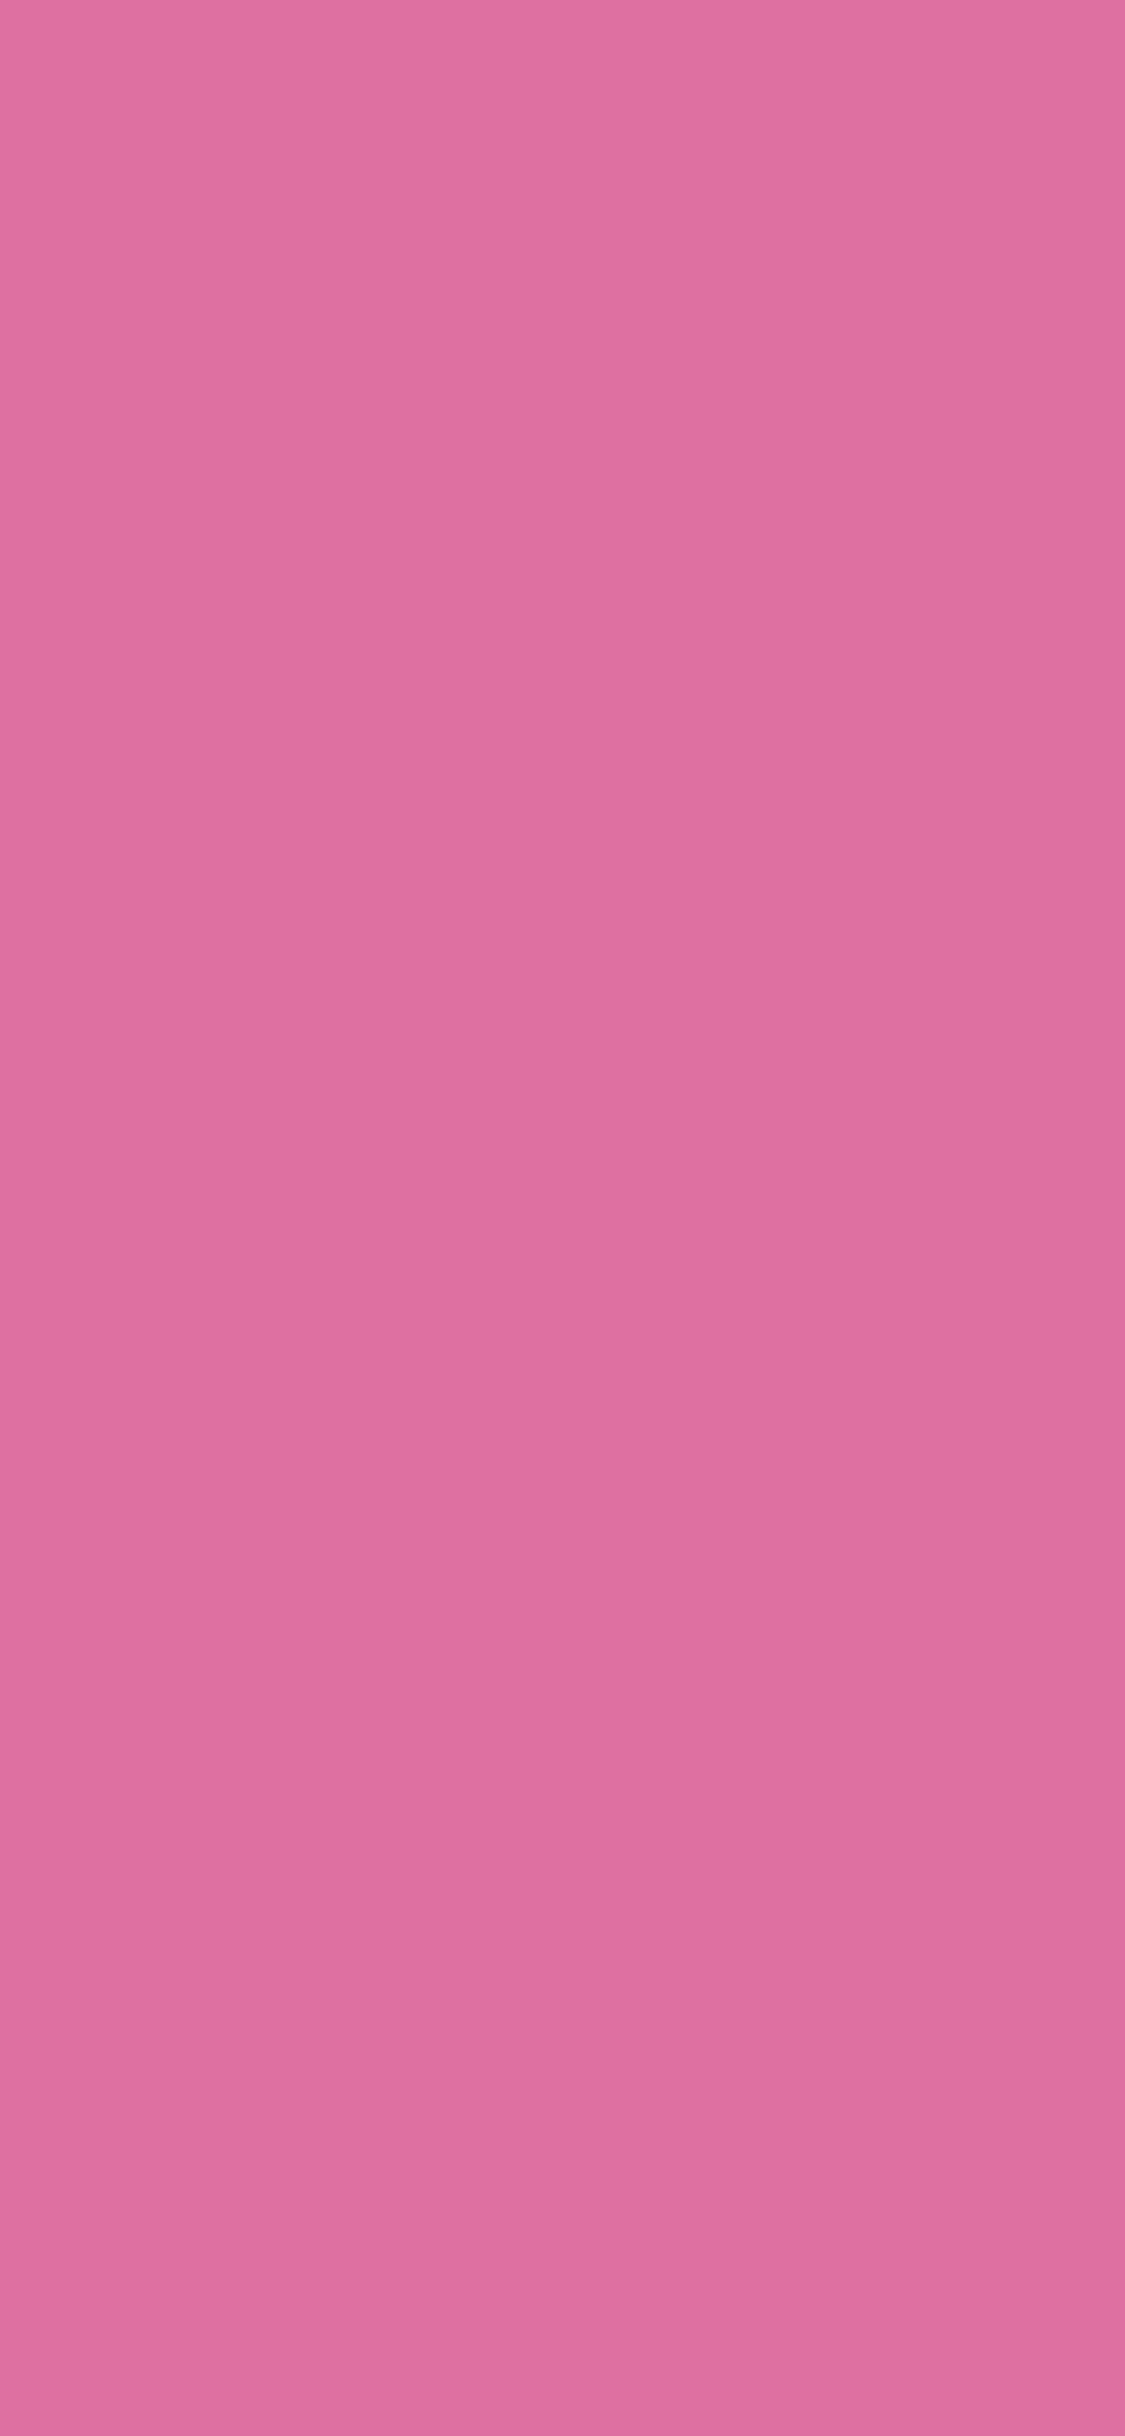 1125x2436 China Pink Solid Color Background